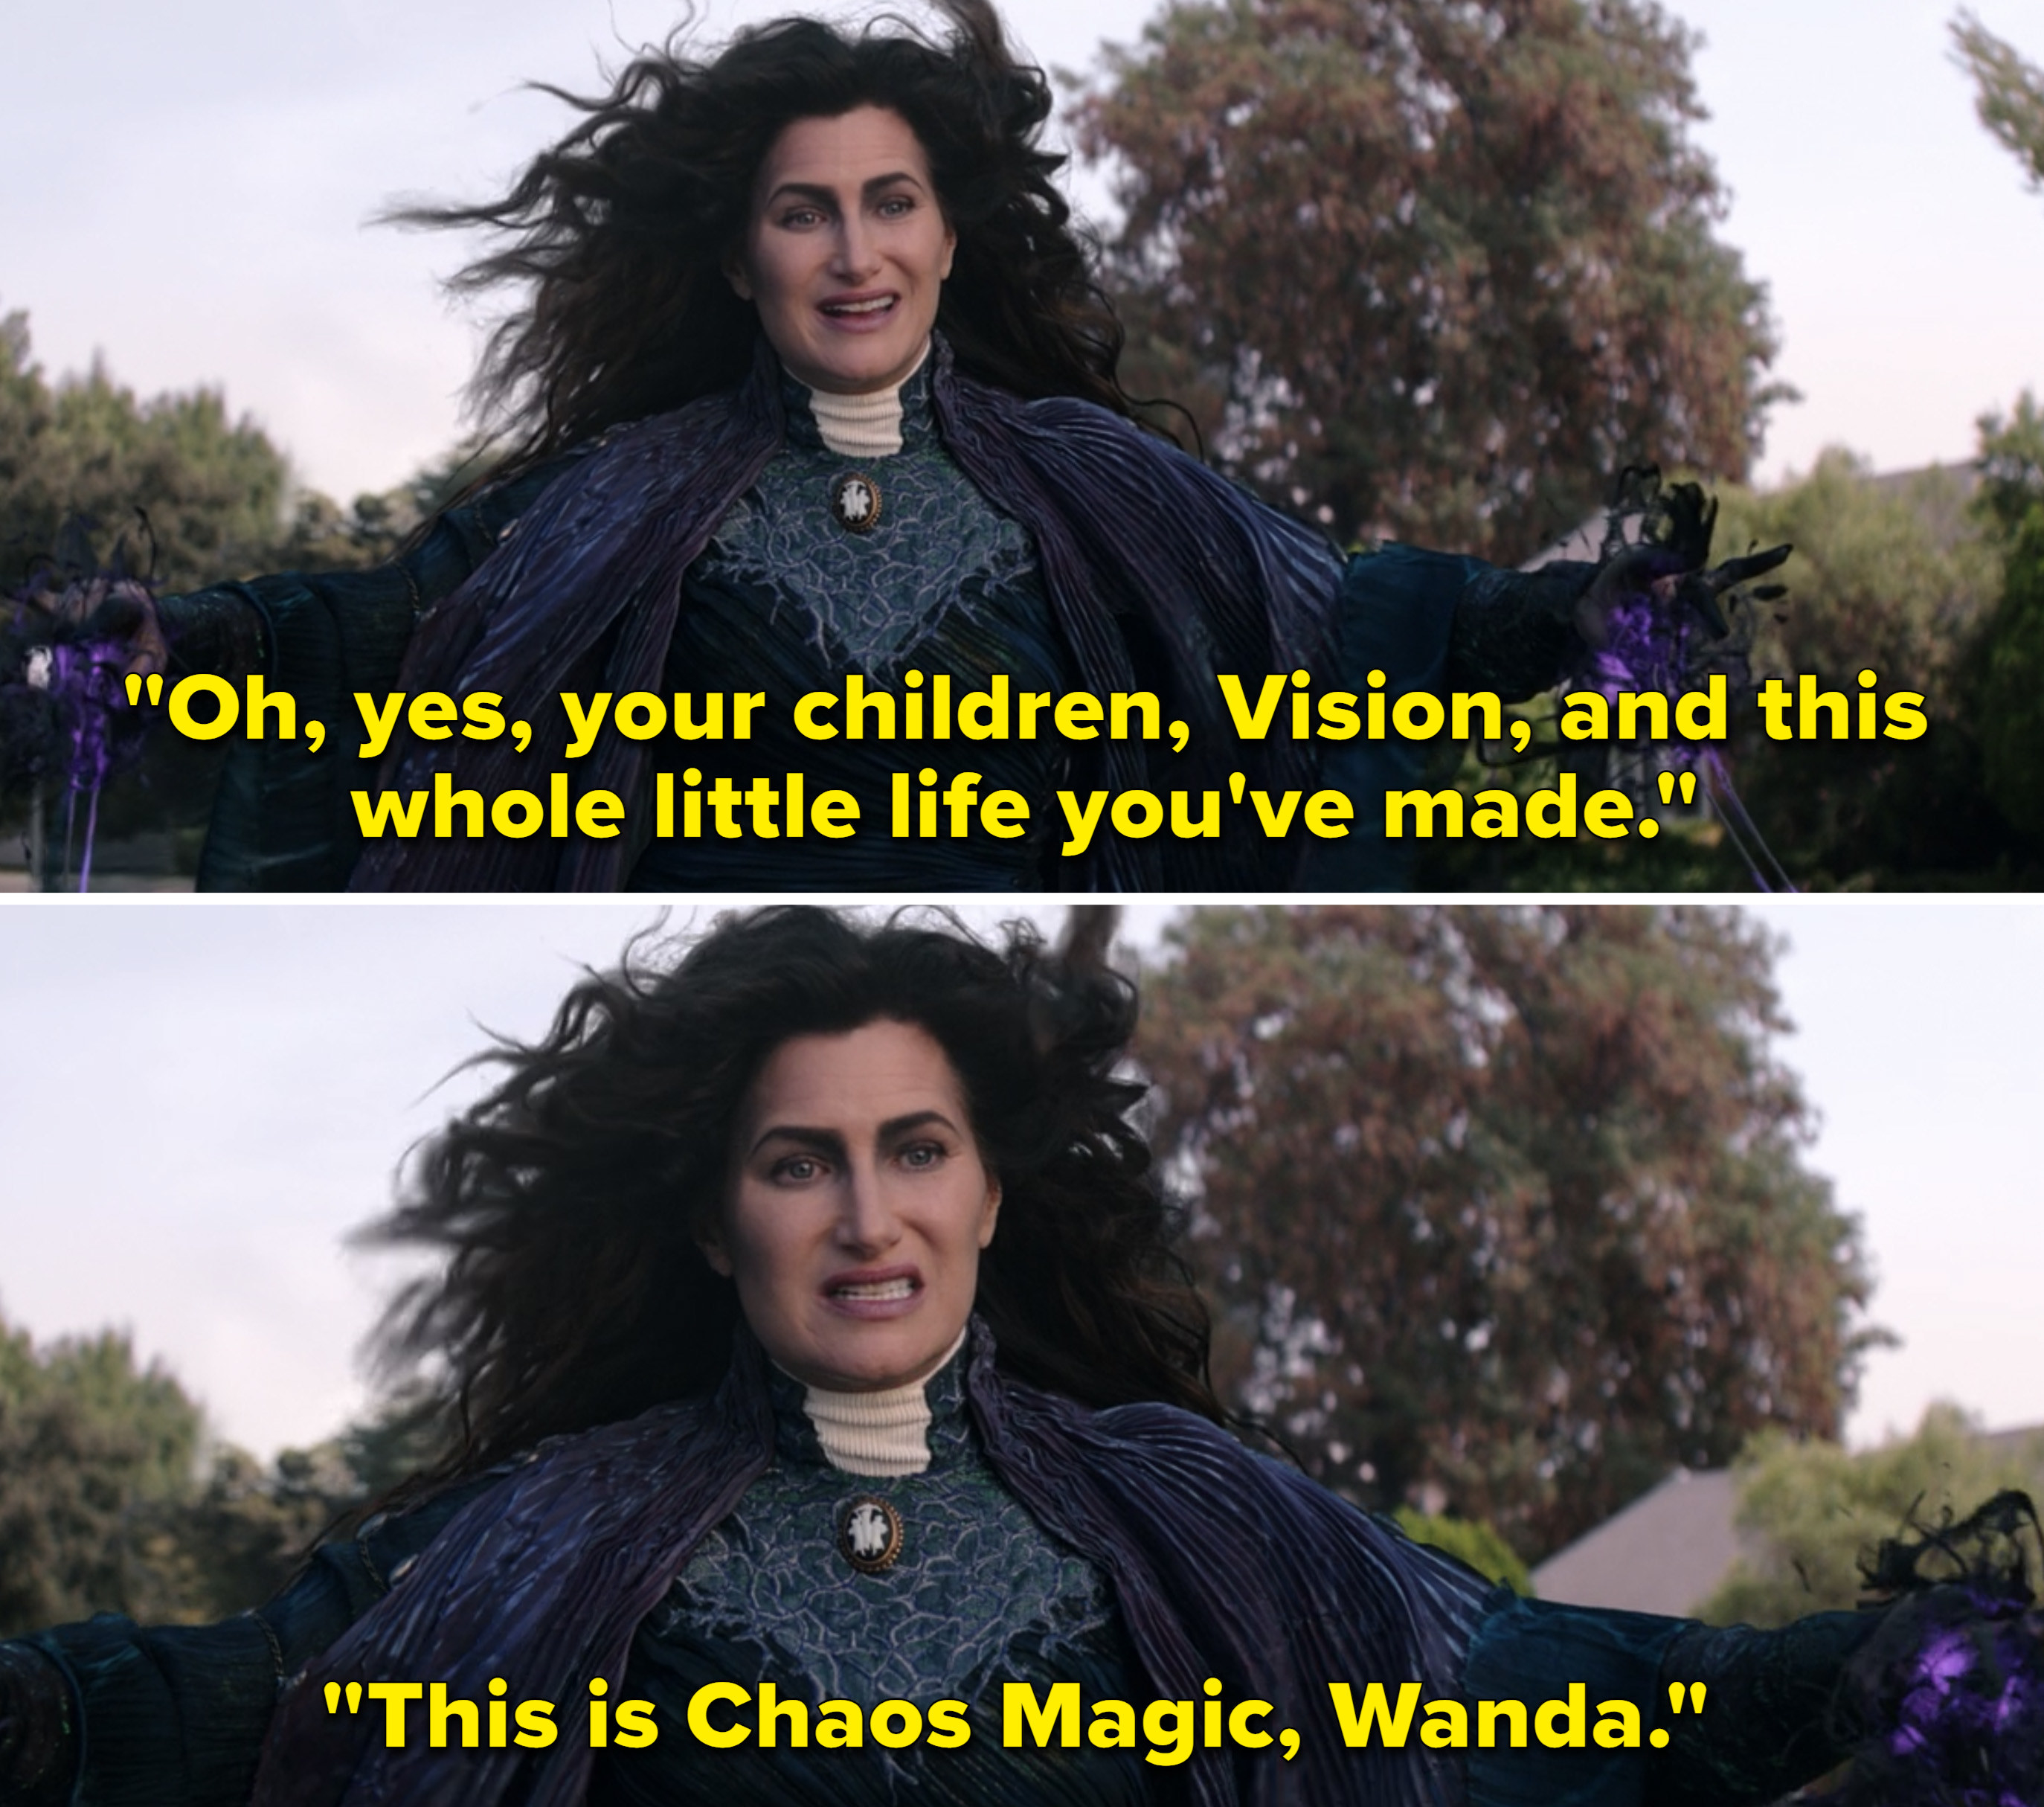 """Agatha saying, """"Oh, yes, your children, vision, and this whole little life you've made. This is Chaos Magic, Wanda"""""""